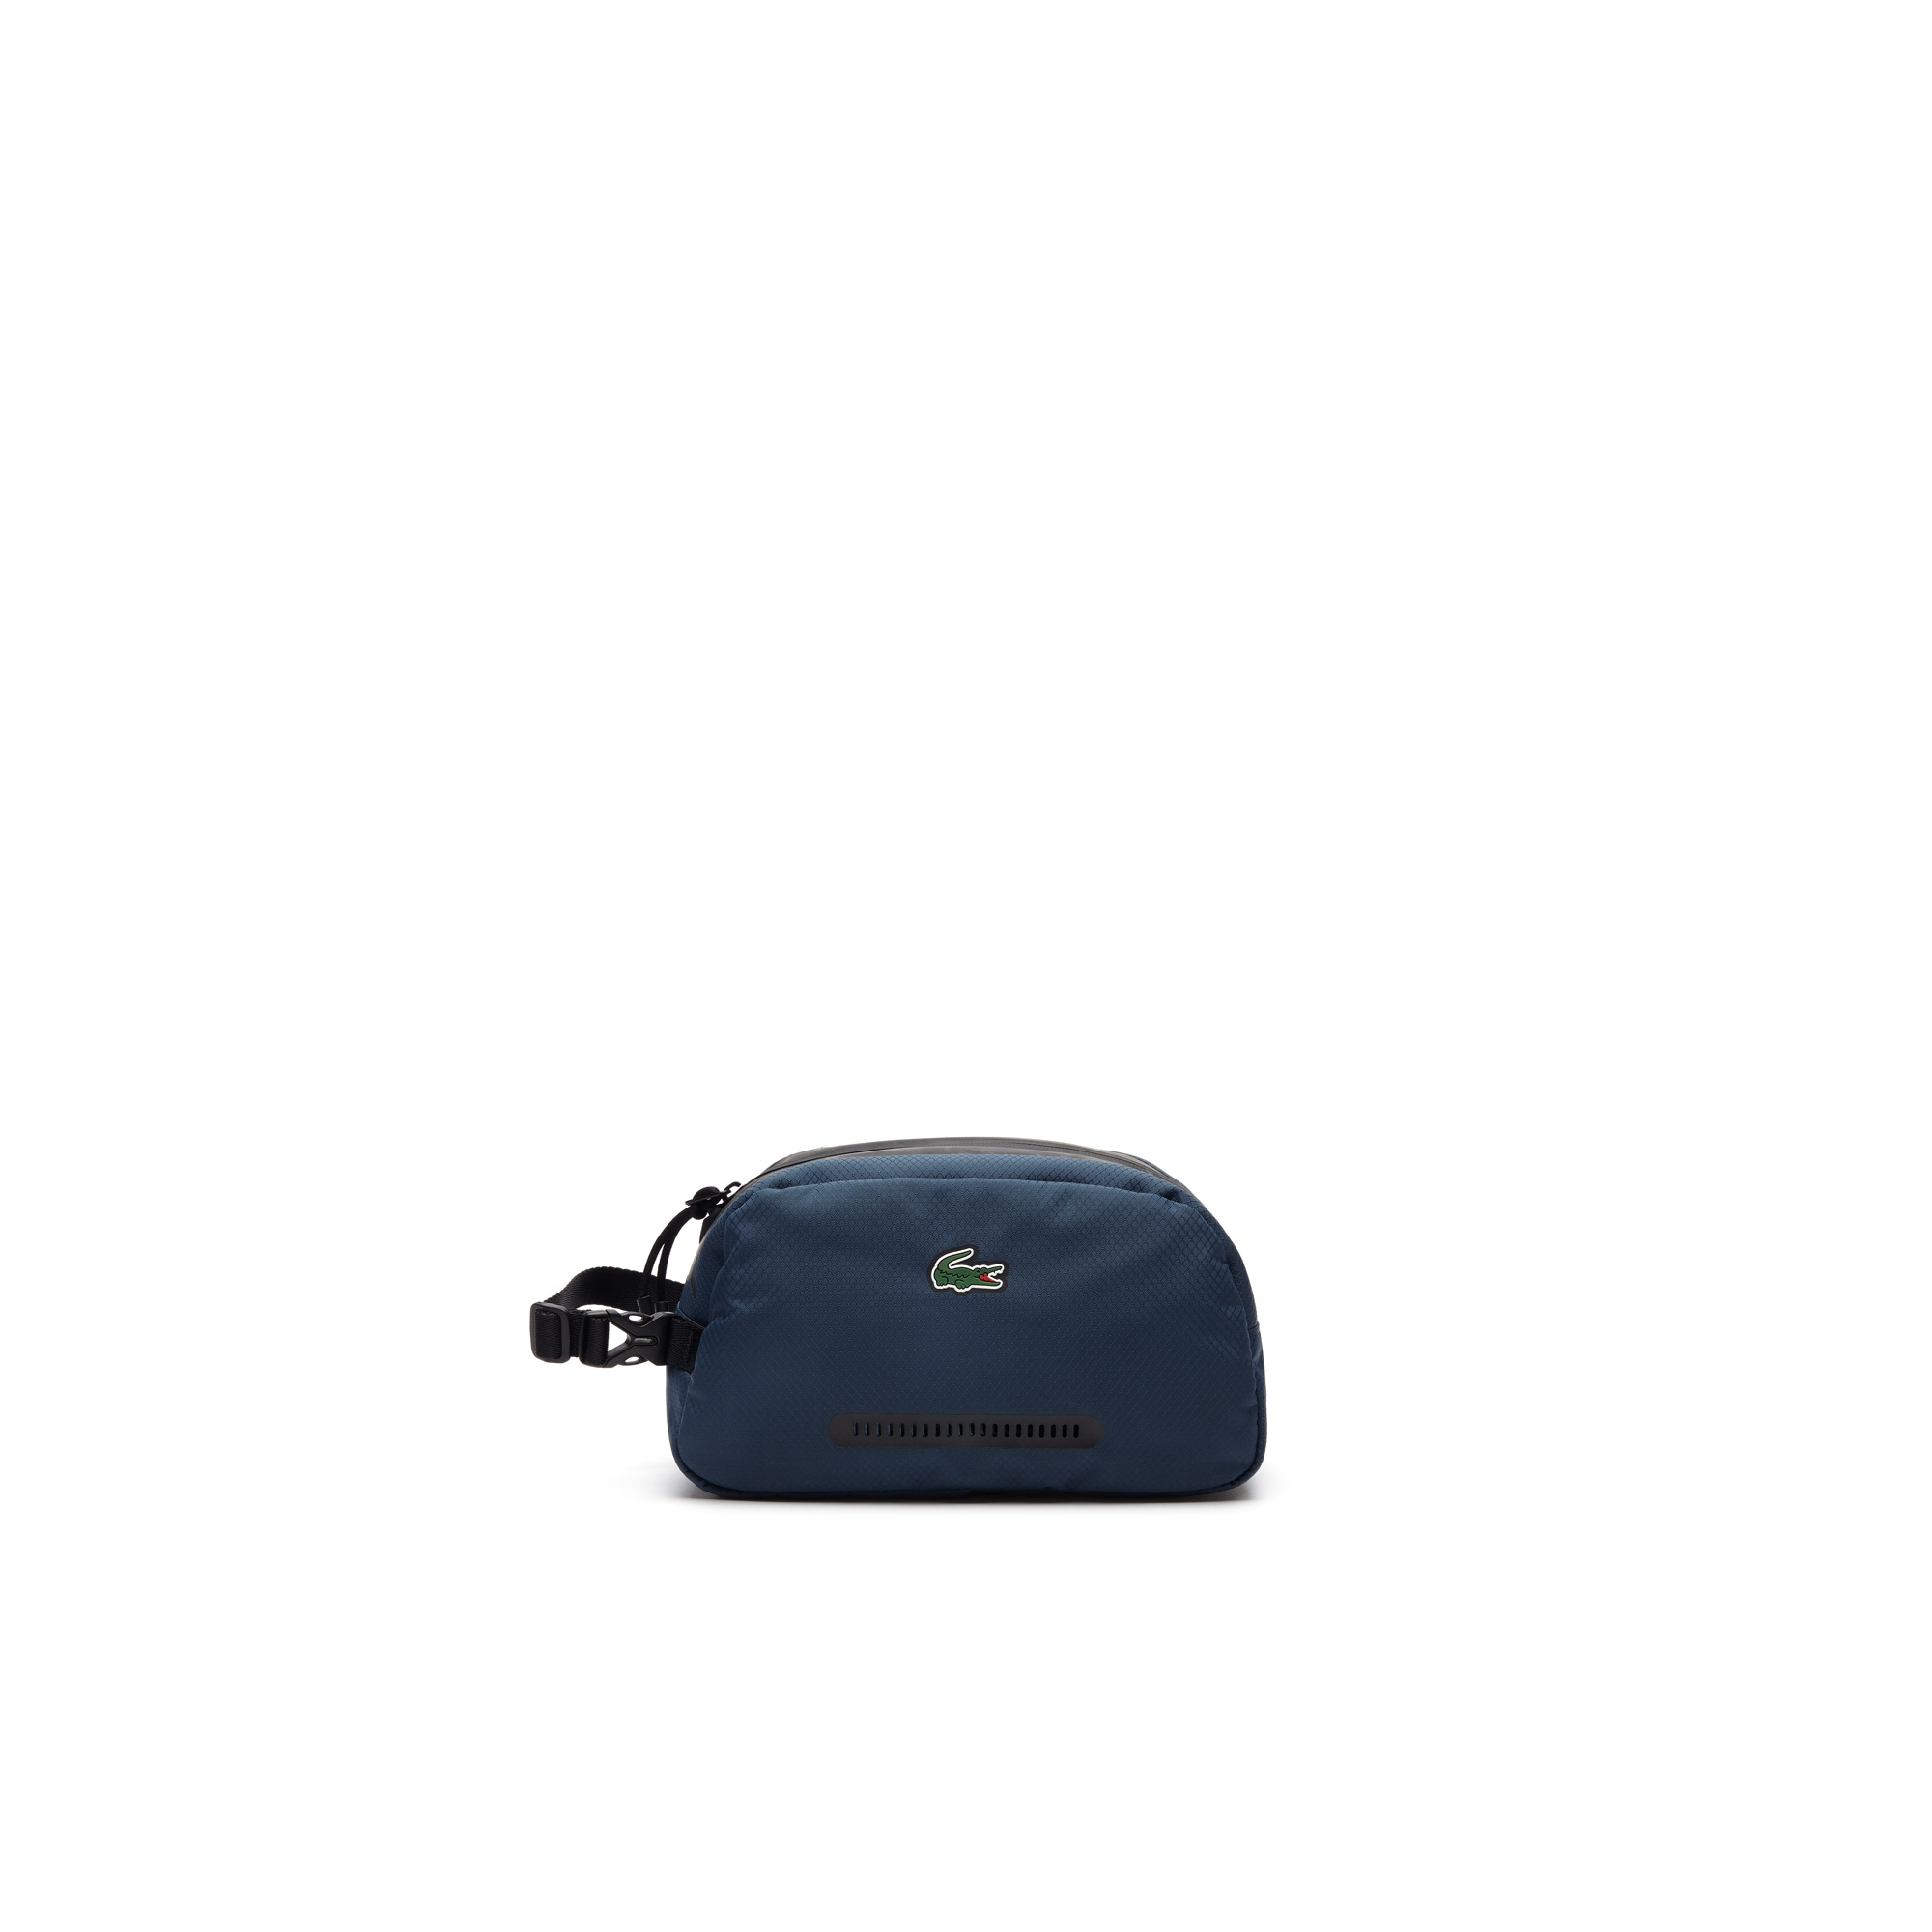 Trousse da toilette Lacoste SPORT Match Point in nylon